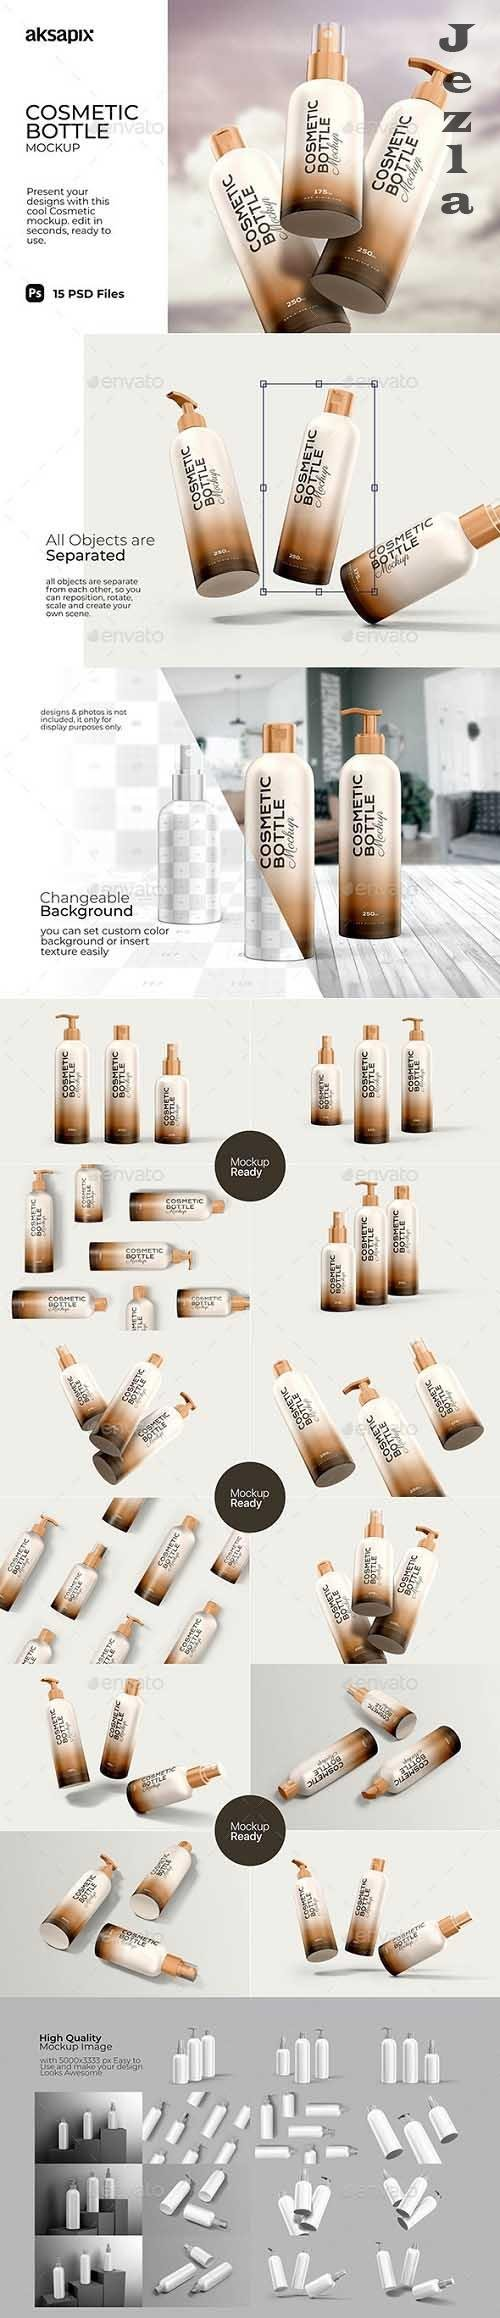 GraphicRiver - Cosmetic Bottle - Mockup 29898641